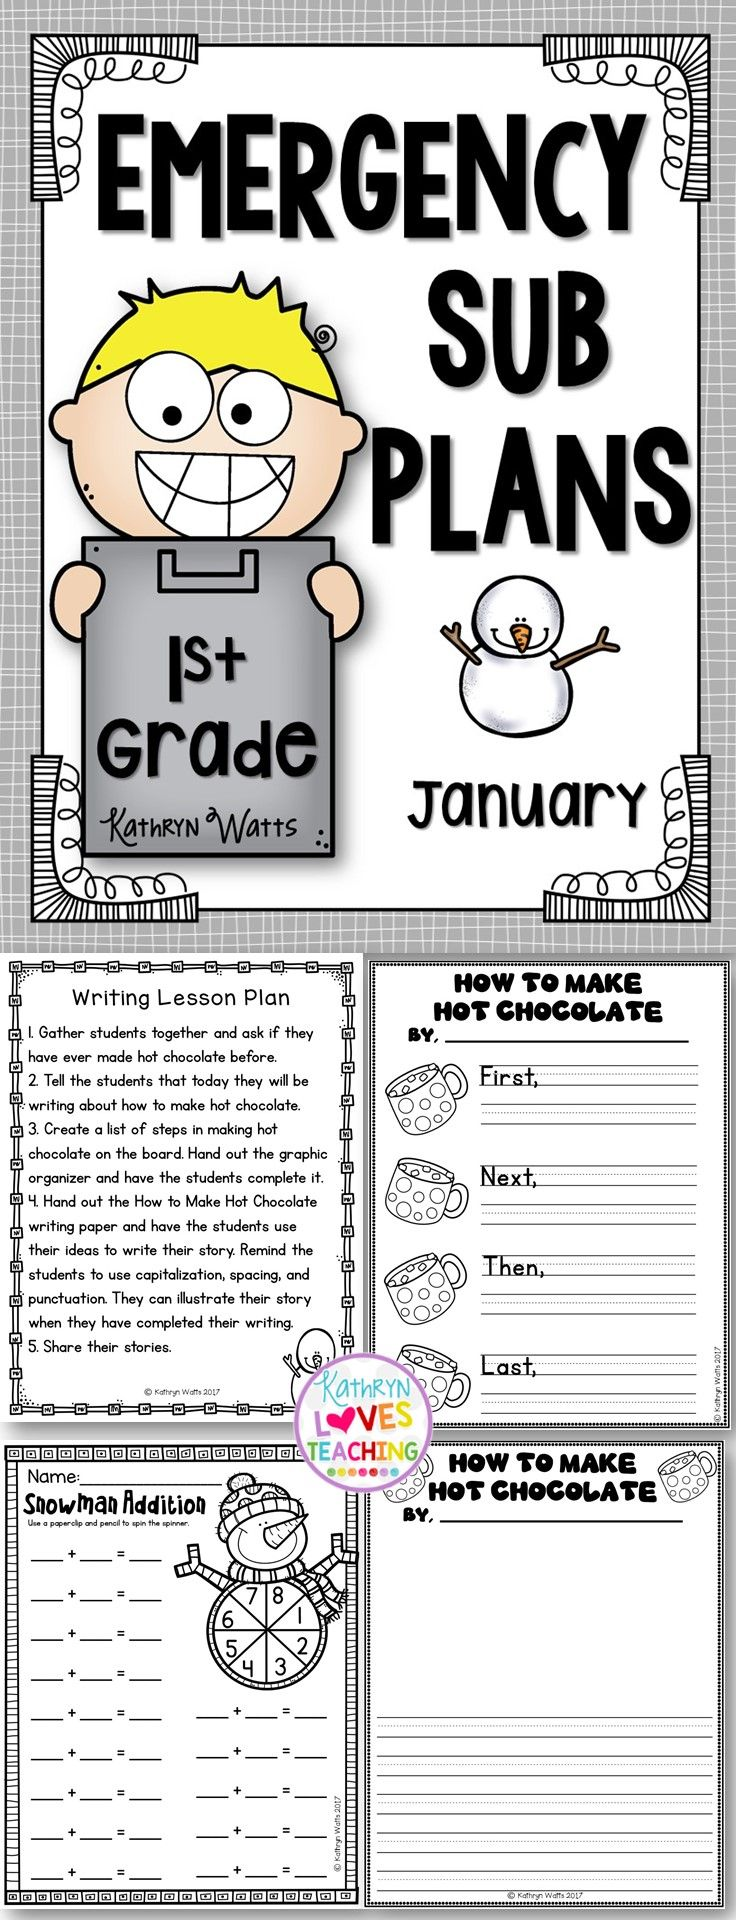 1st Grade Emergency Sub Plans January